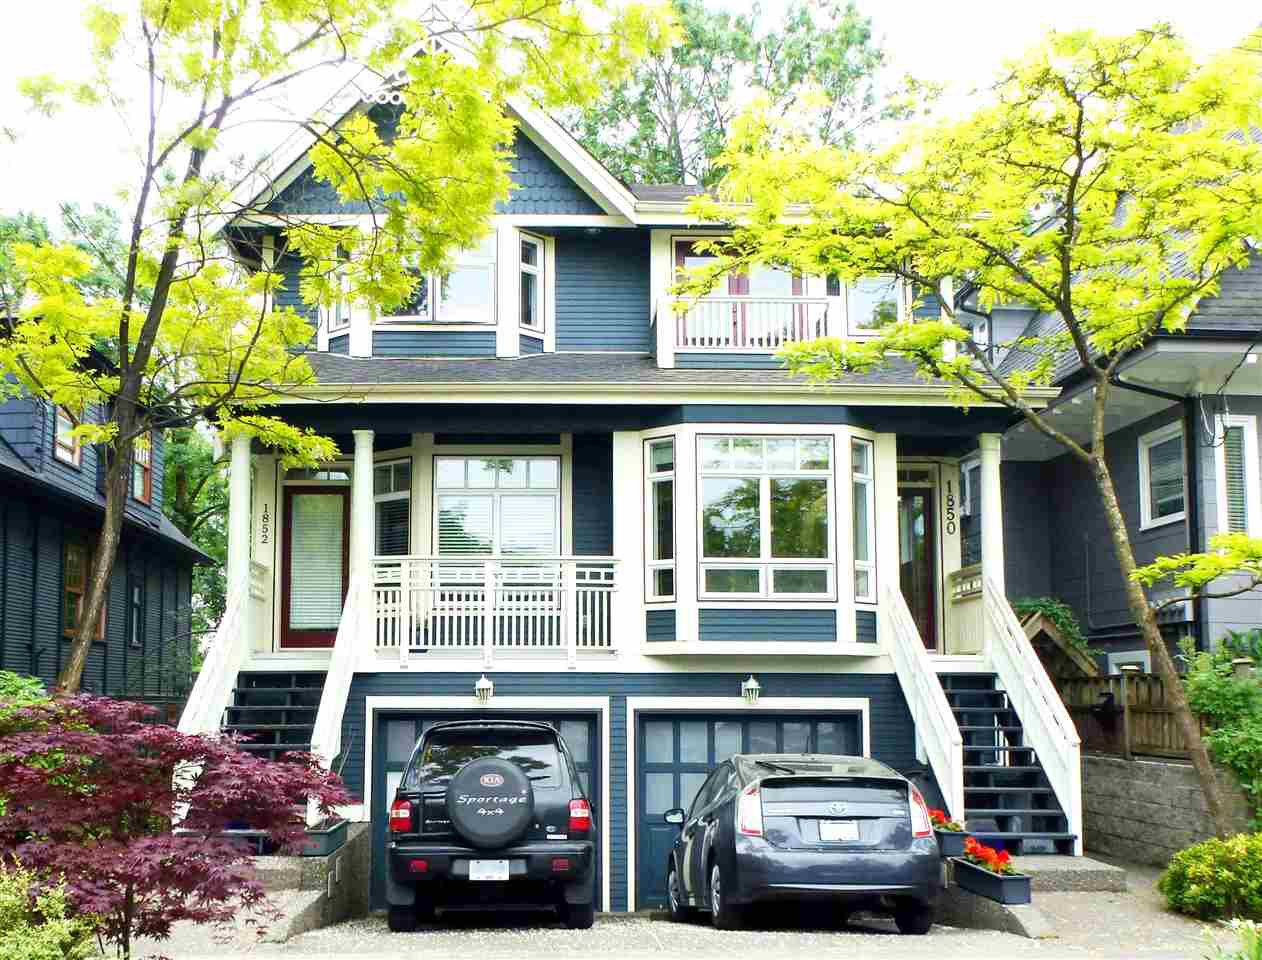 Main Photo: 1850 GRANT Street in Vancouver: Grandview VE 1/2 Duplex for sale (Vancouver East)  : MLS®# R2069613